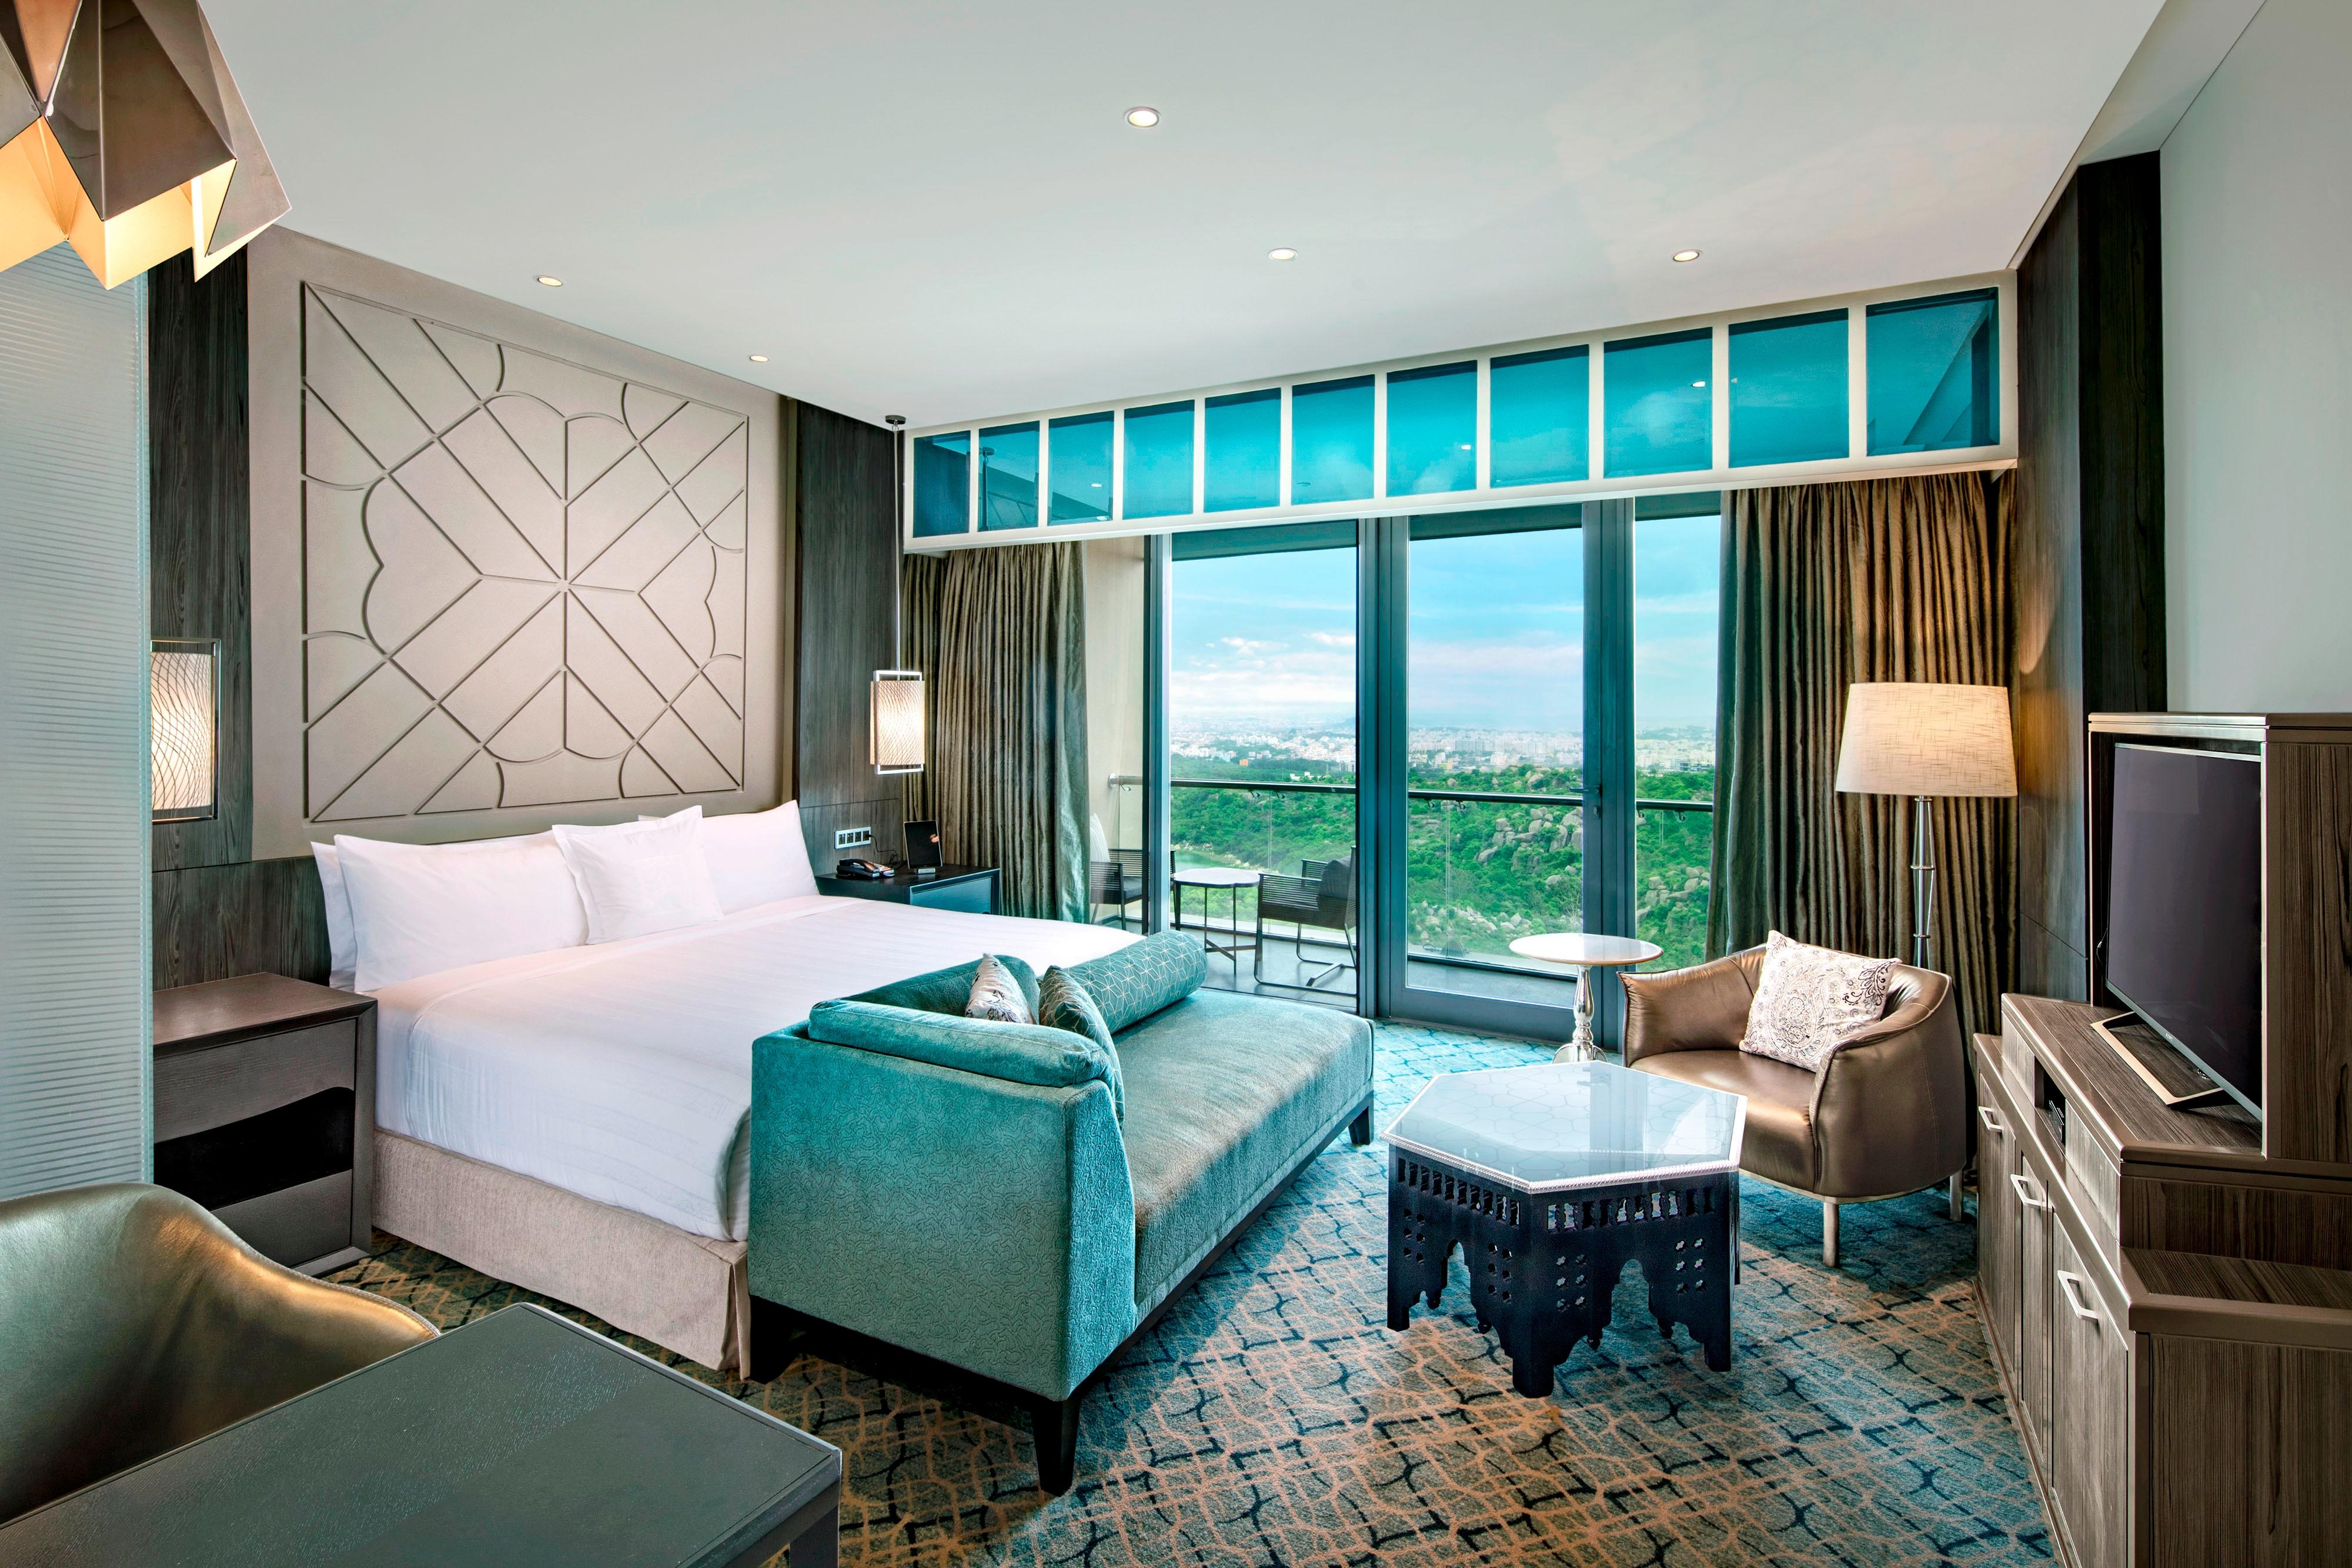 King Executive Club Guest Room